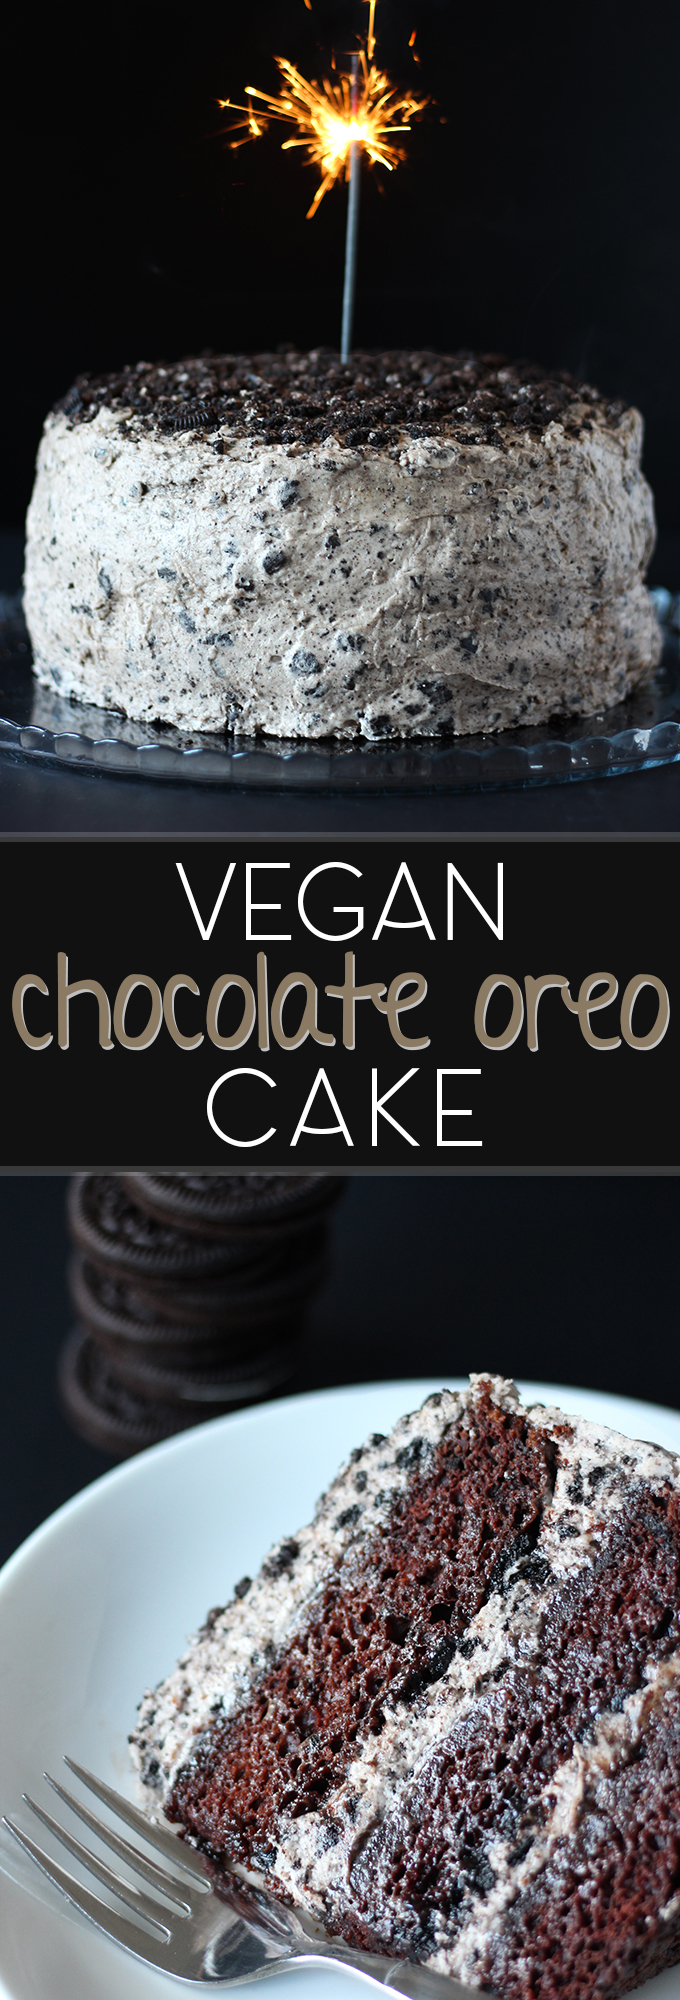 Whole Oreo Cookie Cake Recipe